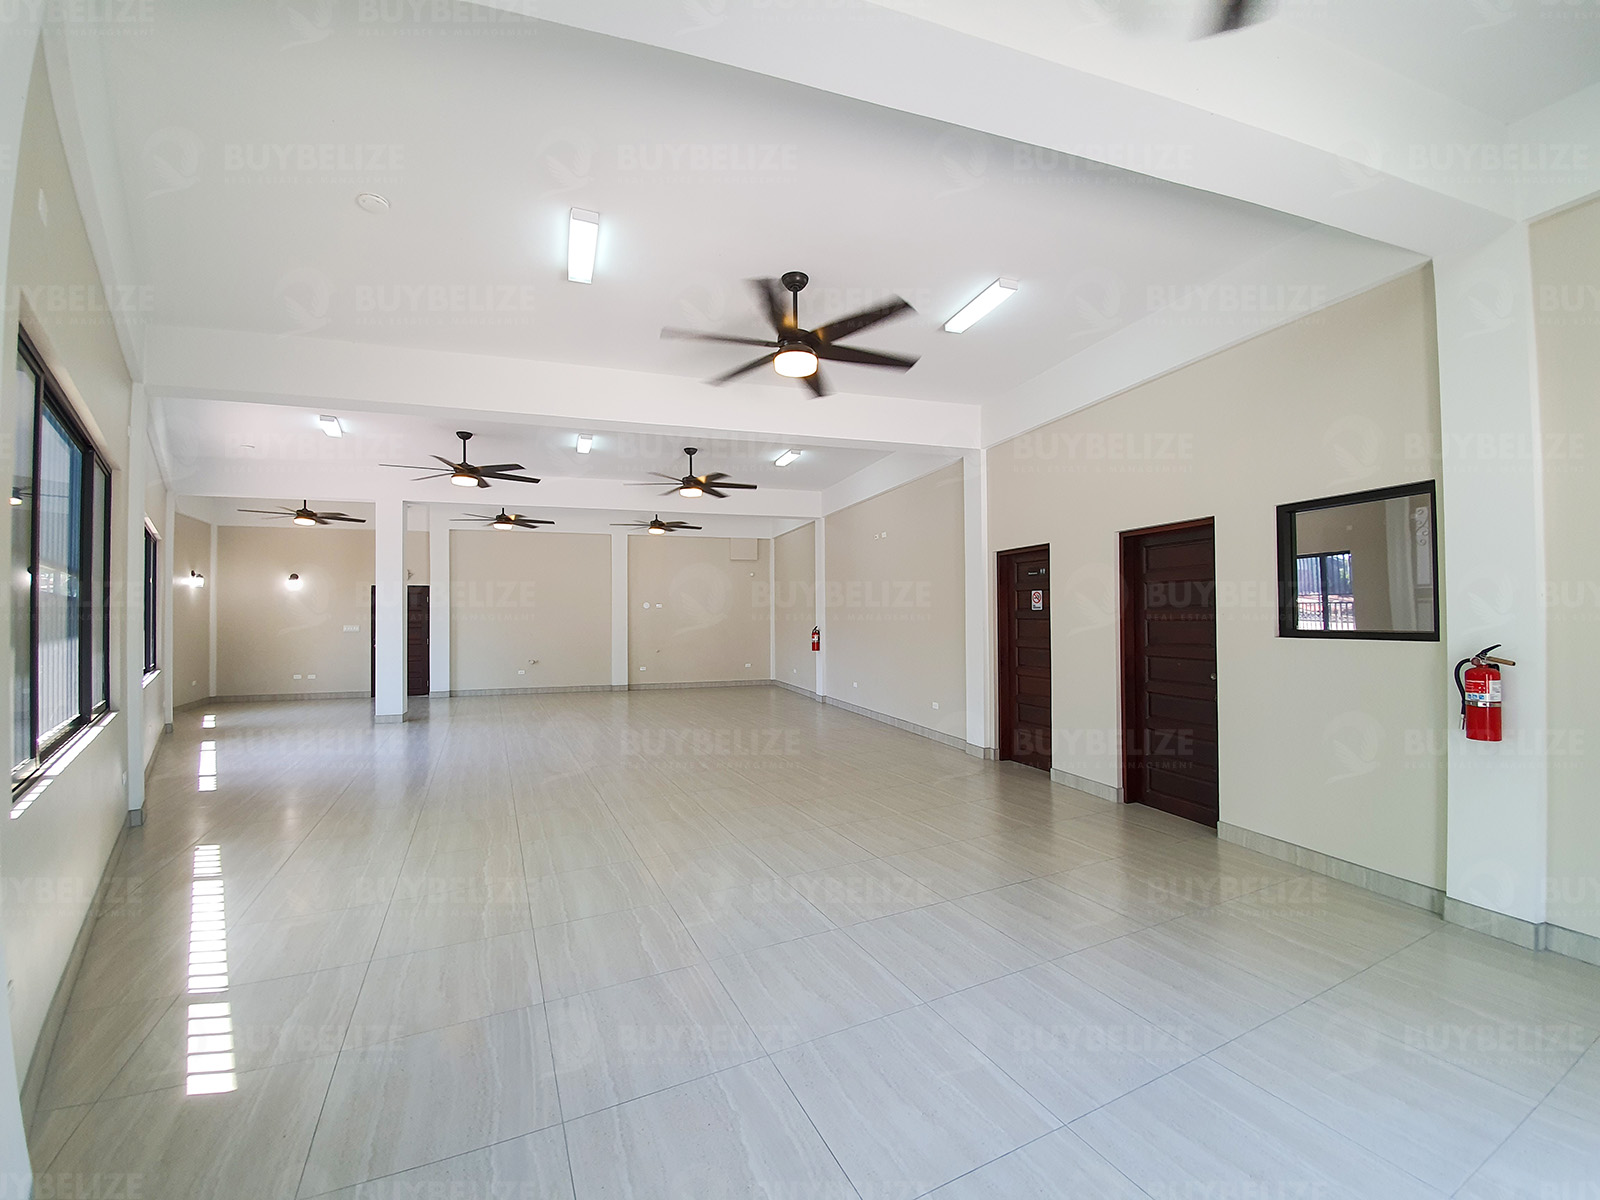 Commercial Space for Rent in Belize City